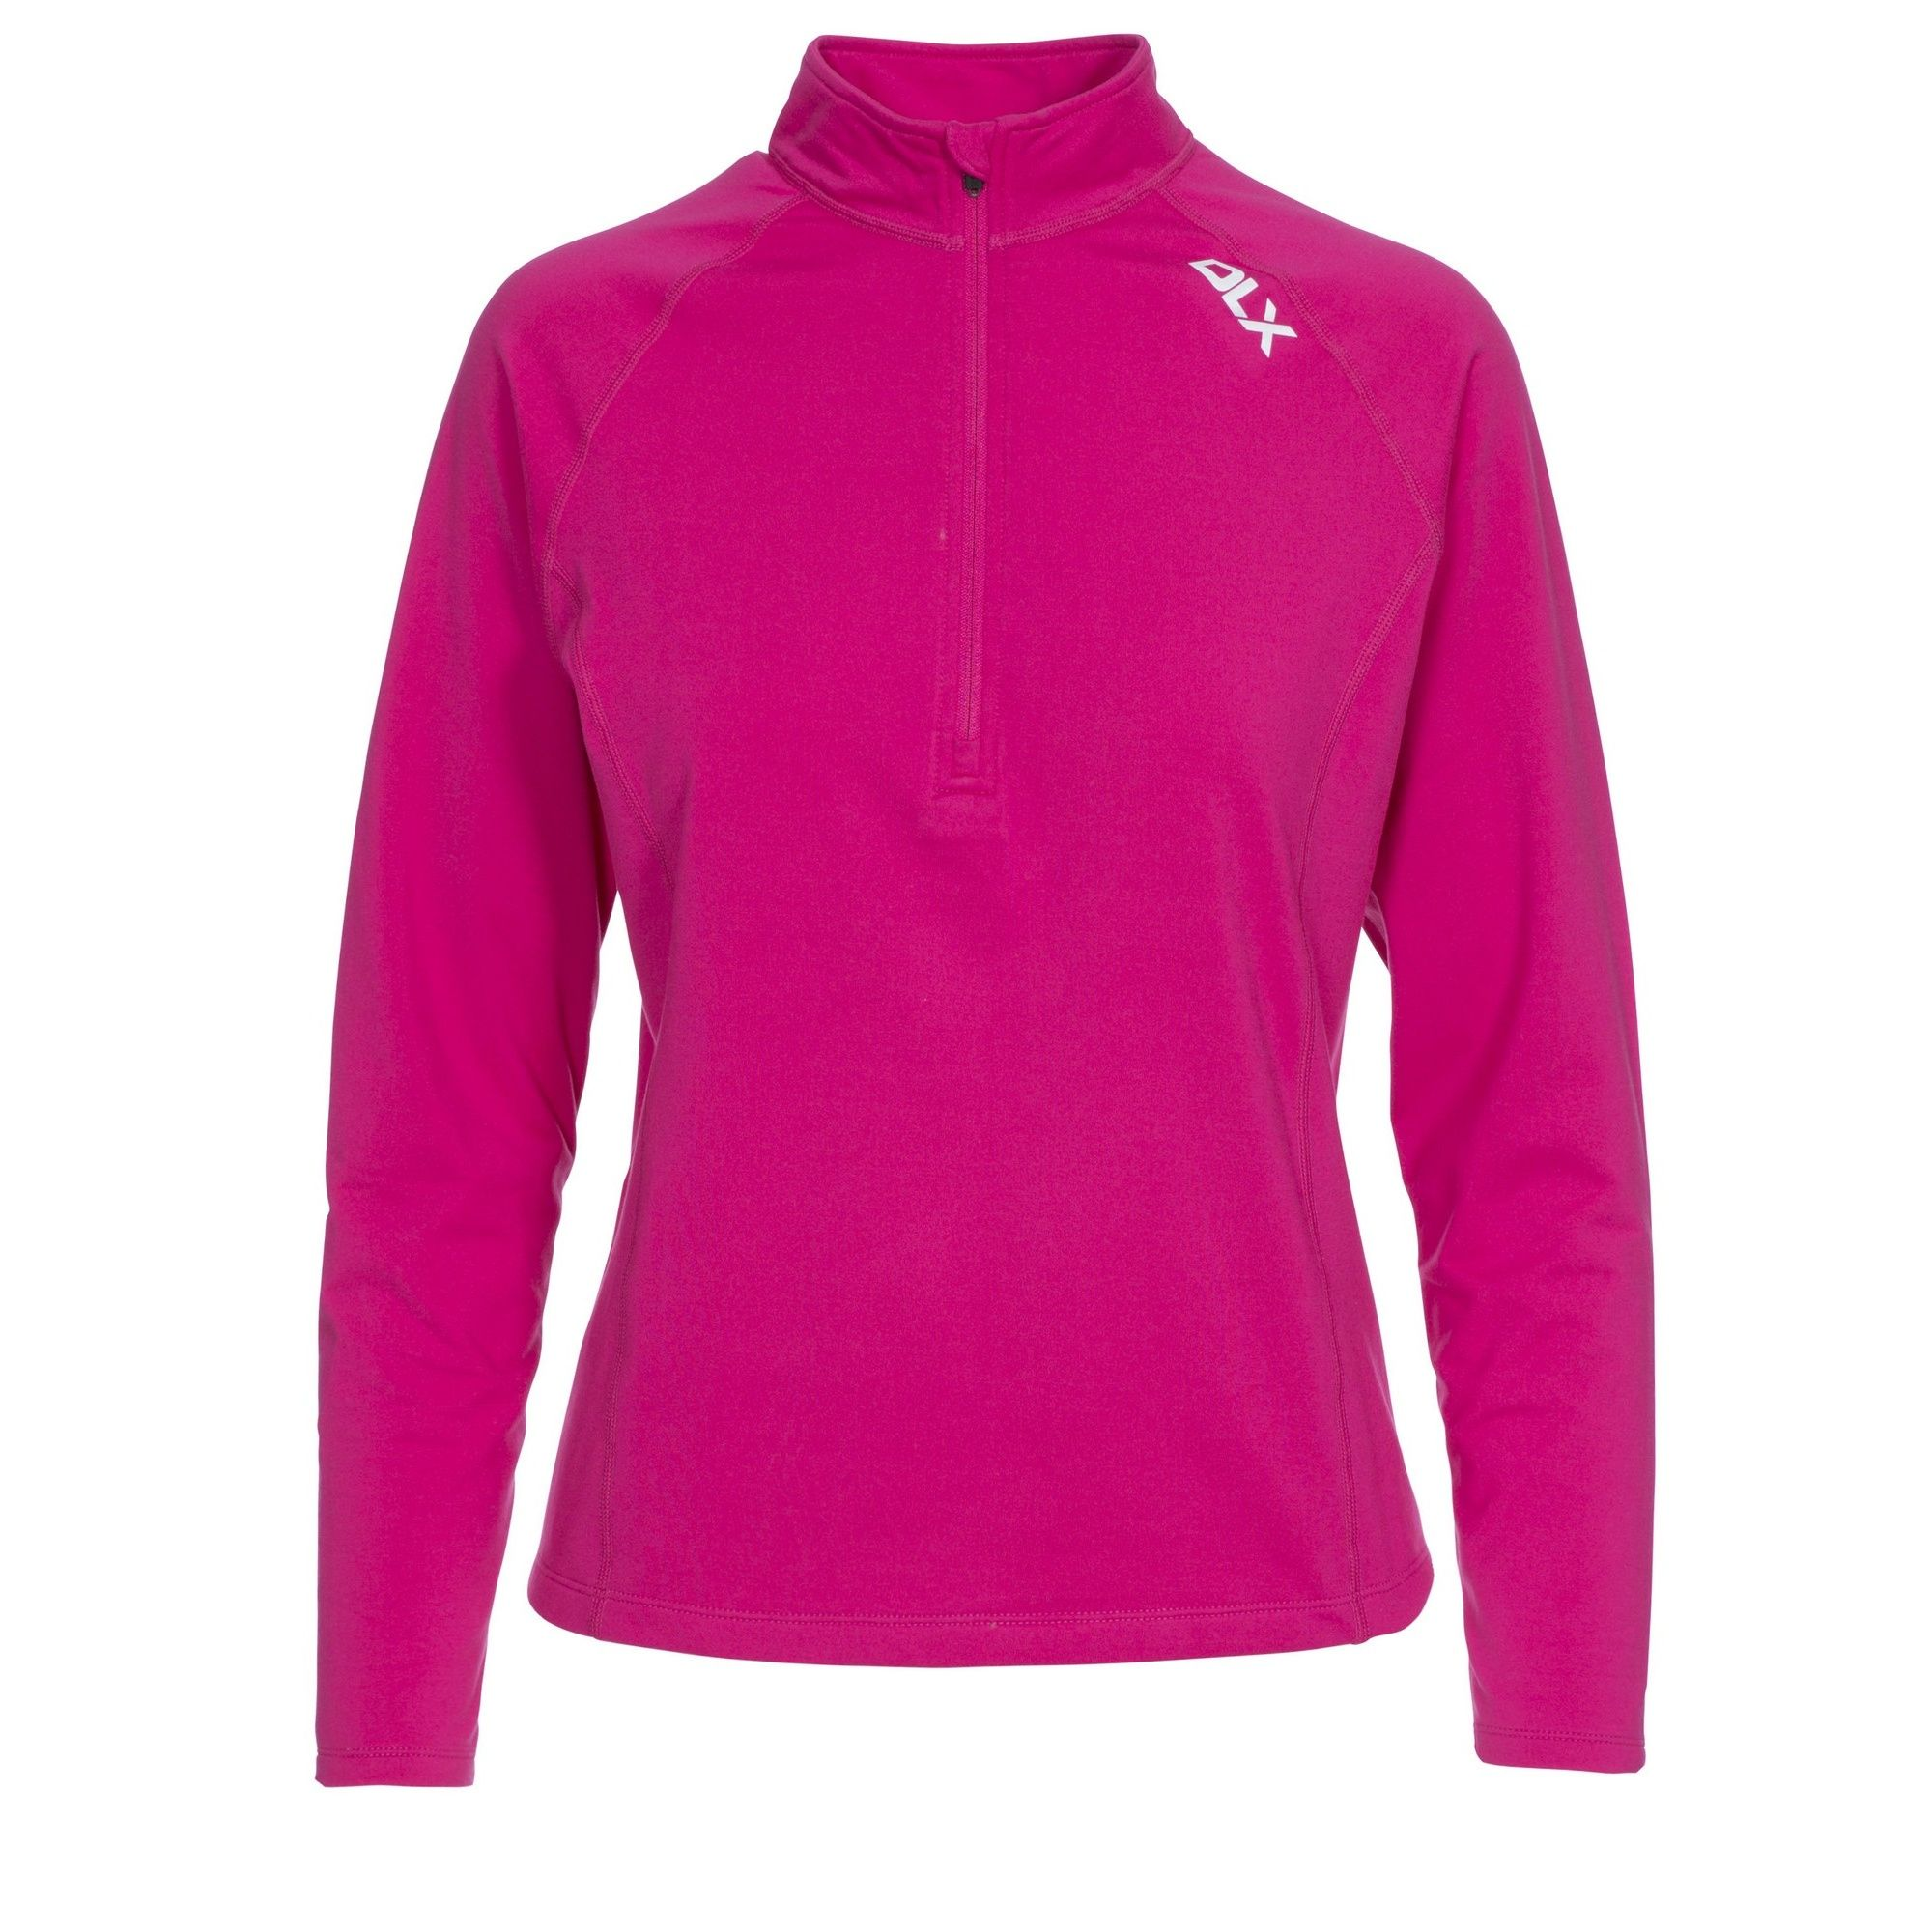 Trespass Womens/Ladies Odette DLX Active Top